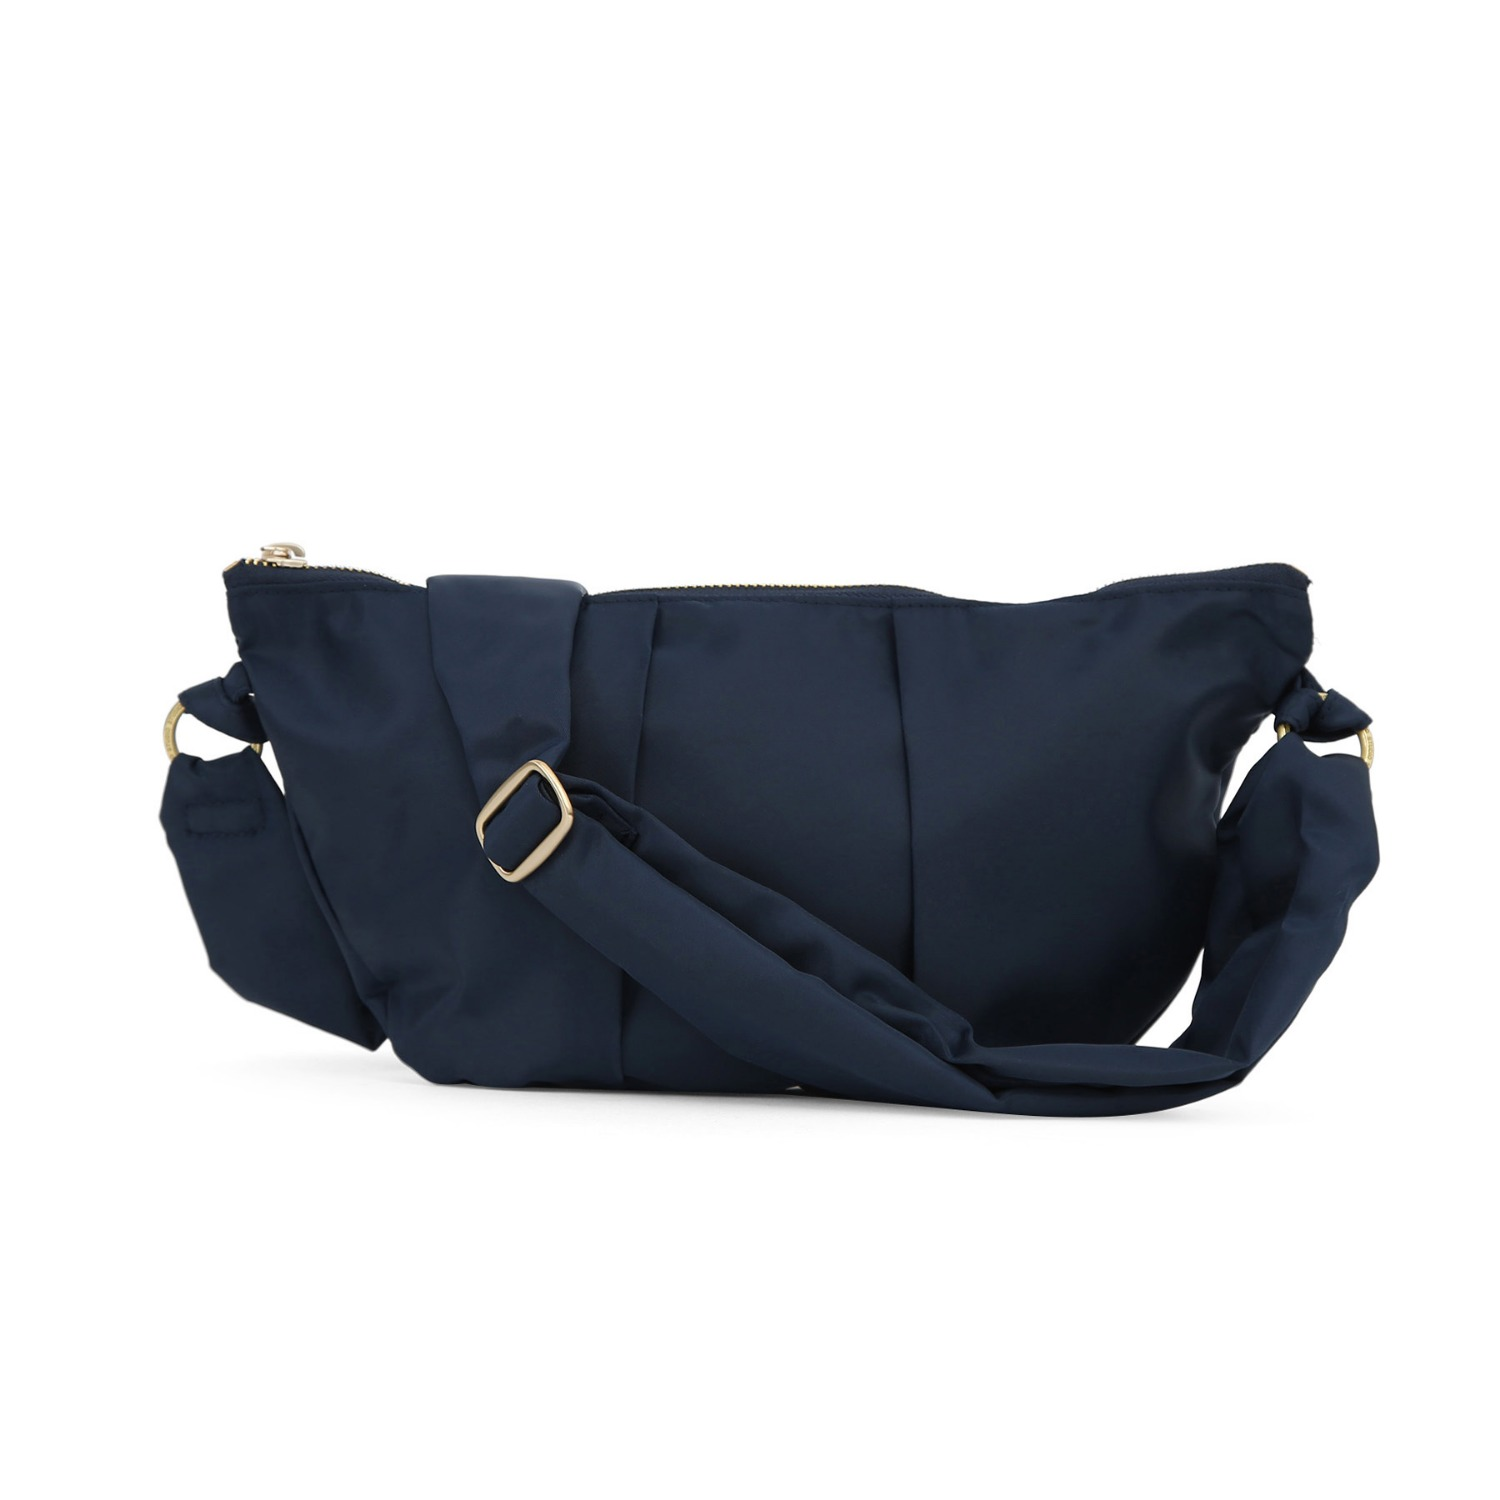 CRESCENT BAG / WRINKLE / N TWILL / NAVY